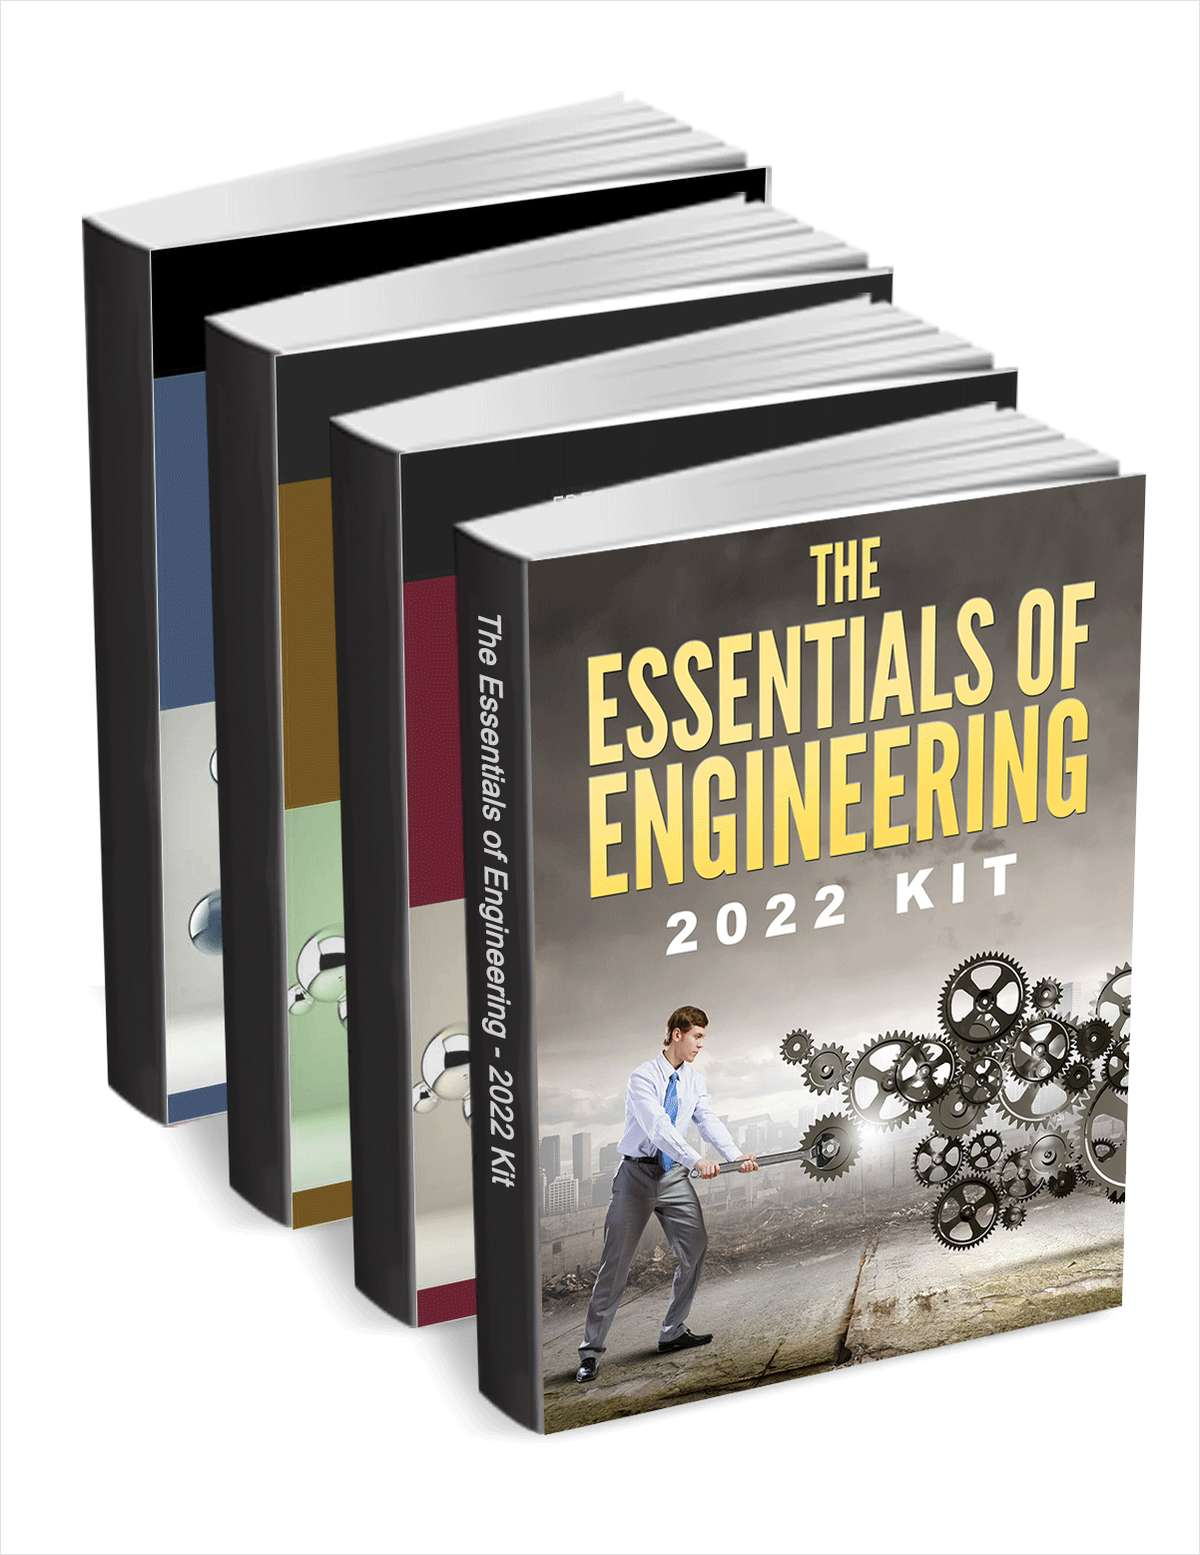 The Essentials of Engineering - Summer 2019 Kit